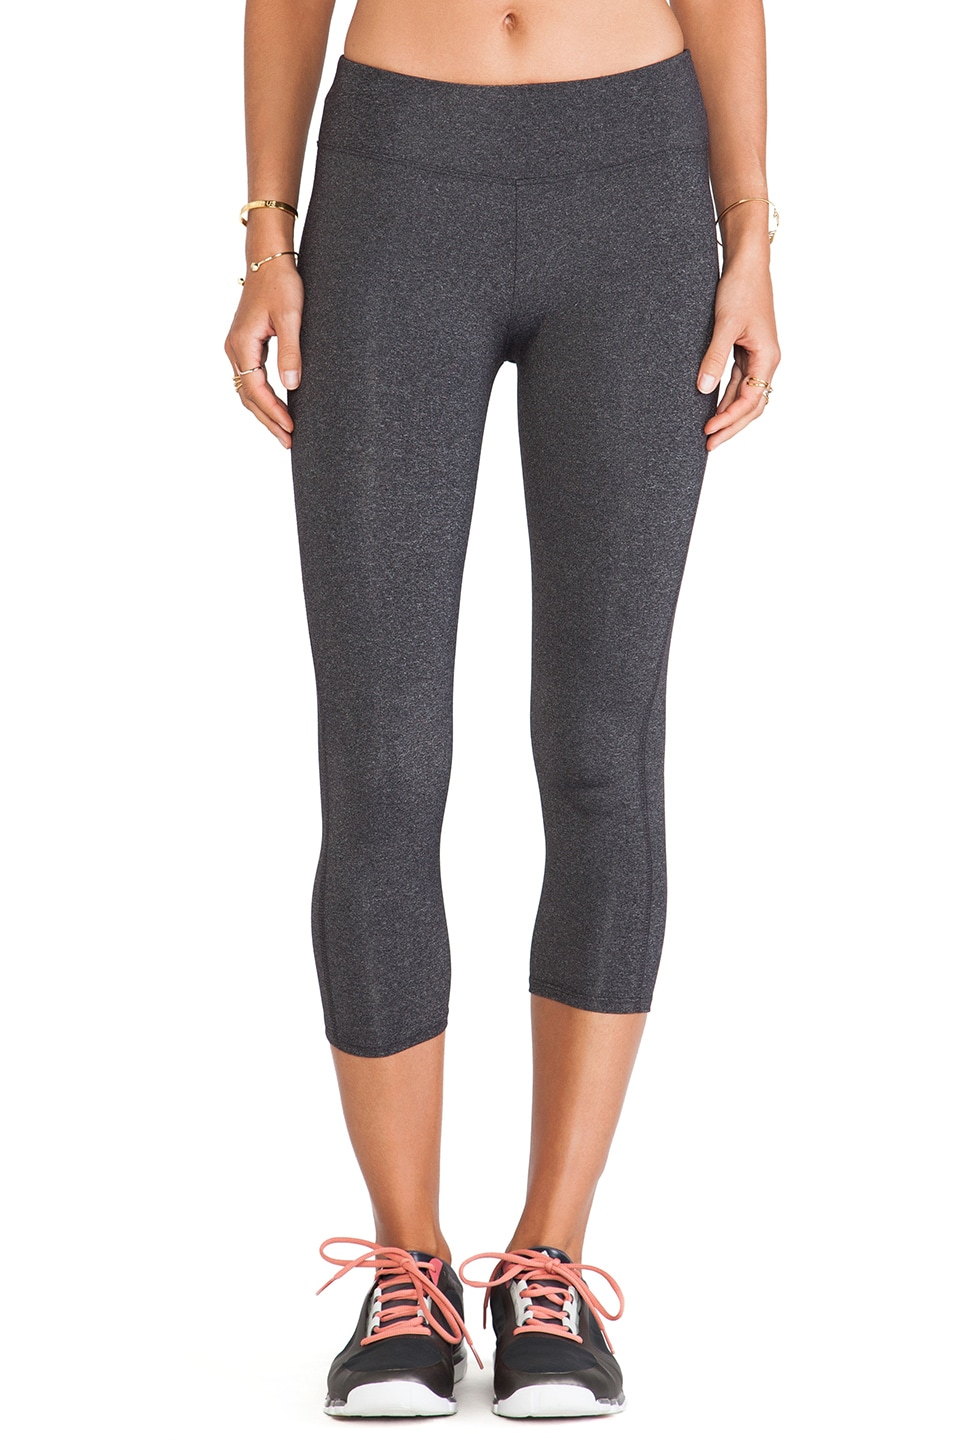 SOLOW So Low High Impact Crop Legging in Heather Charcoal